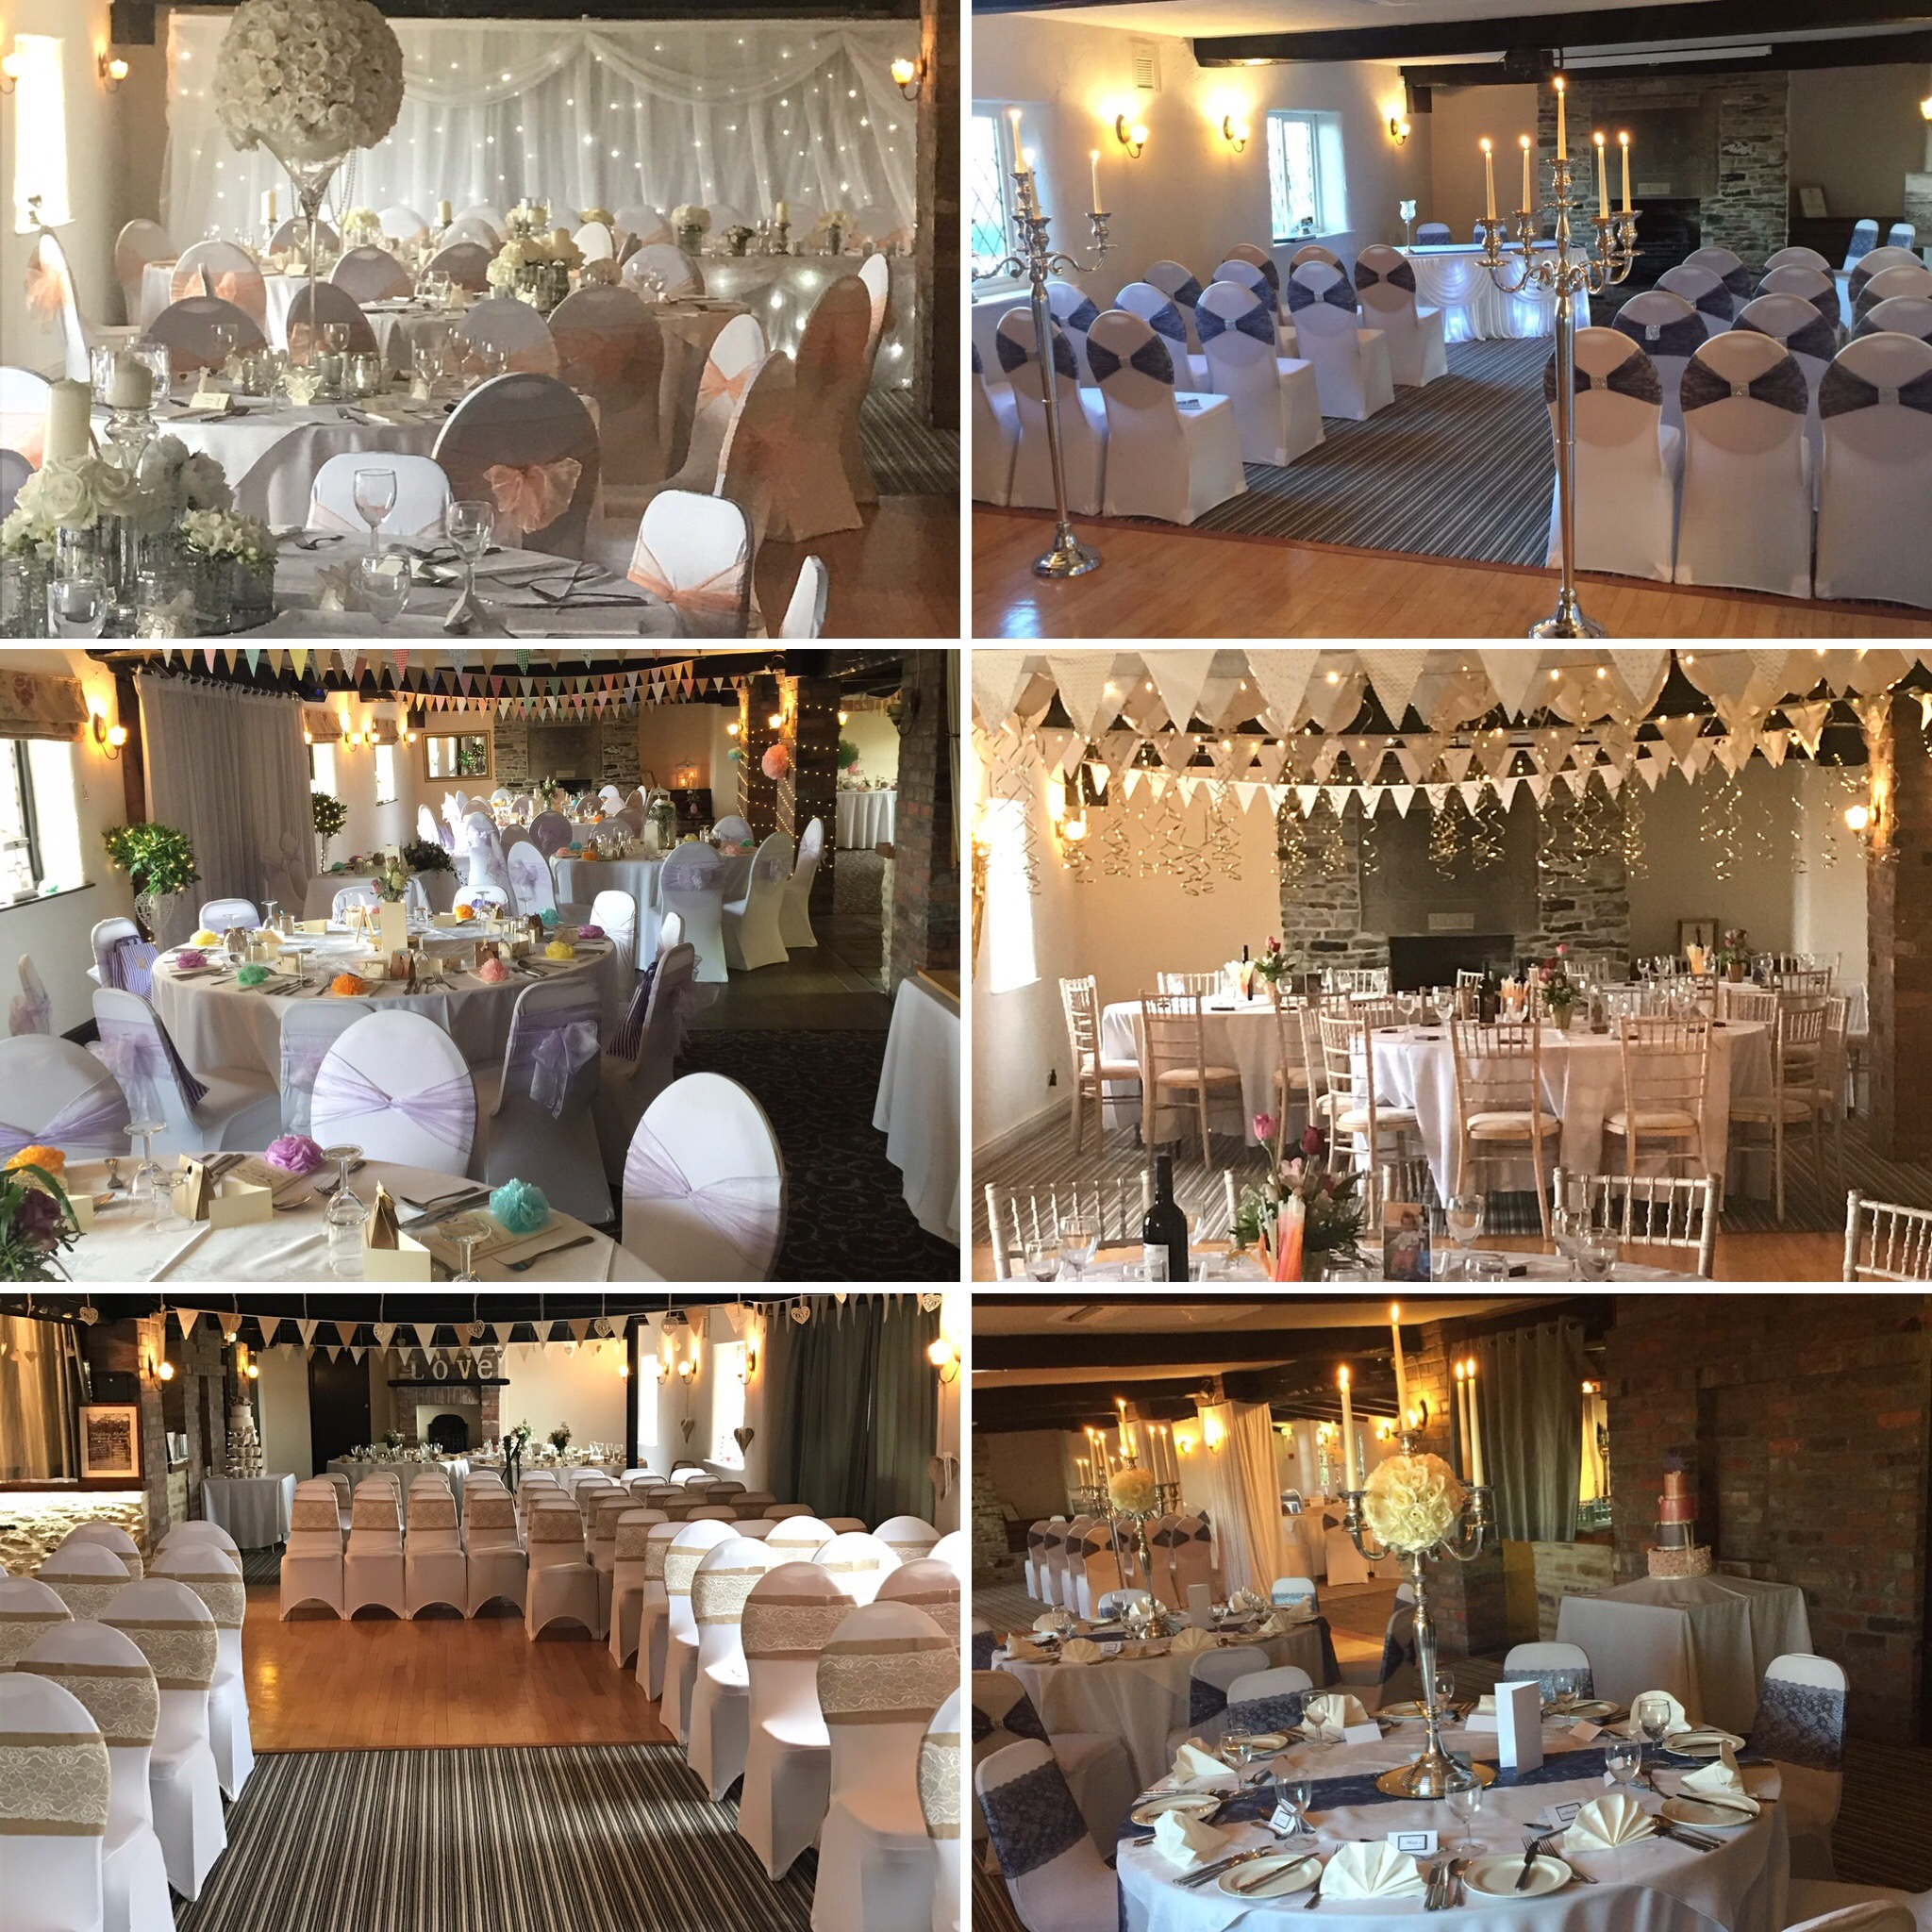 Wedding Venues White River: Wedding Venue In Derbyshire With The Best Views Over The